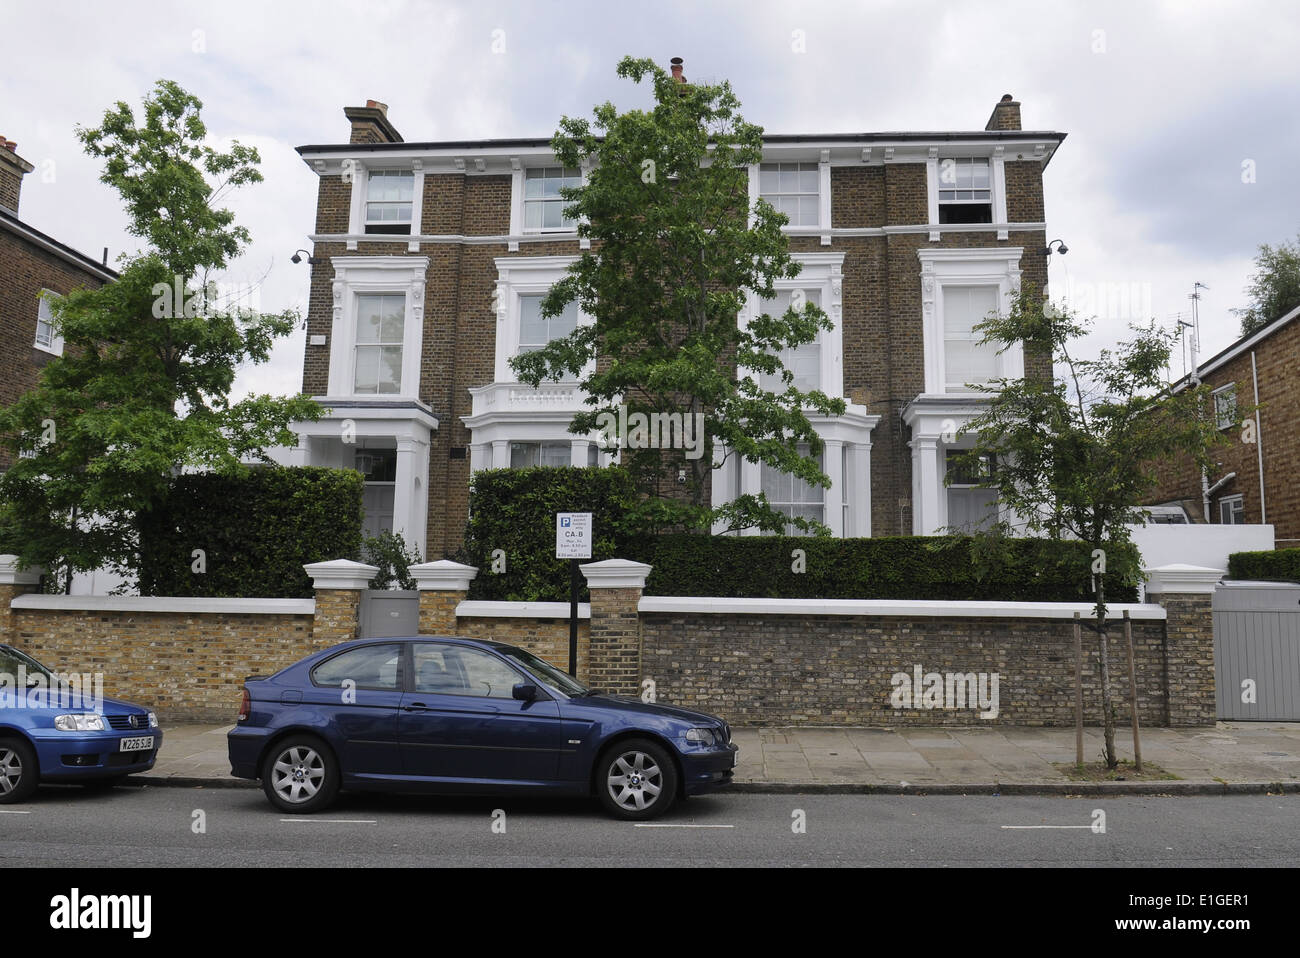 Gwyneth Paltrow And Chris Martins London Home In Belsize Park UK